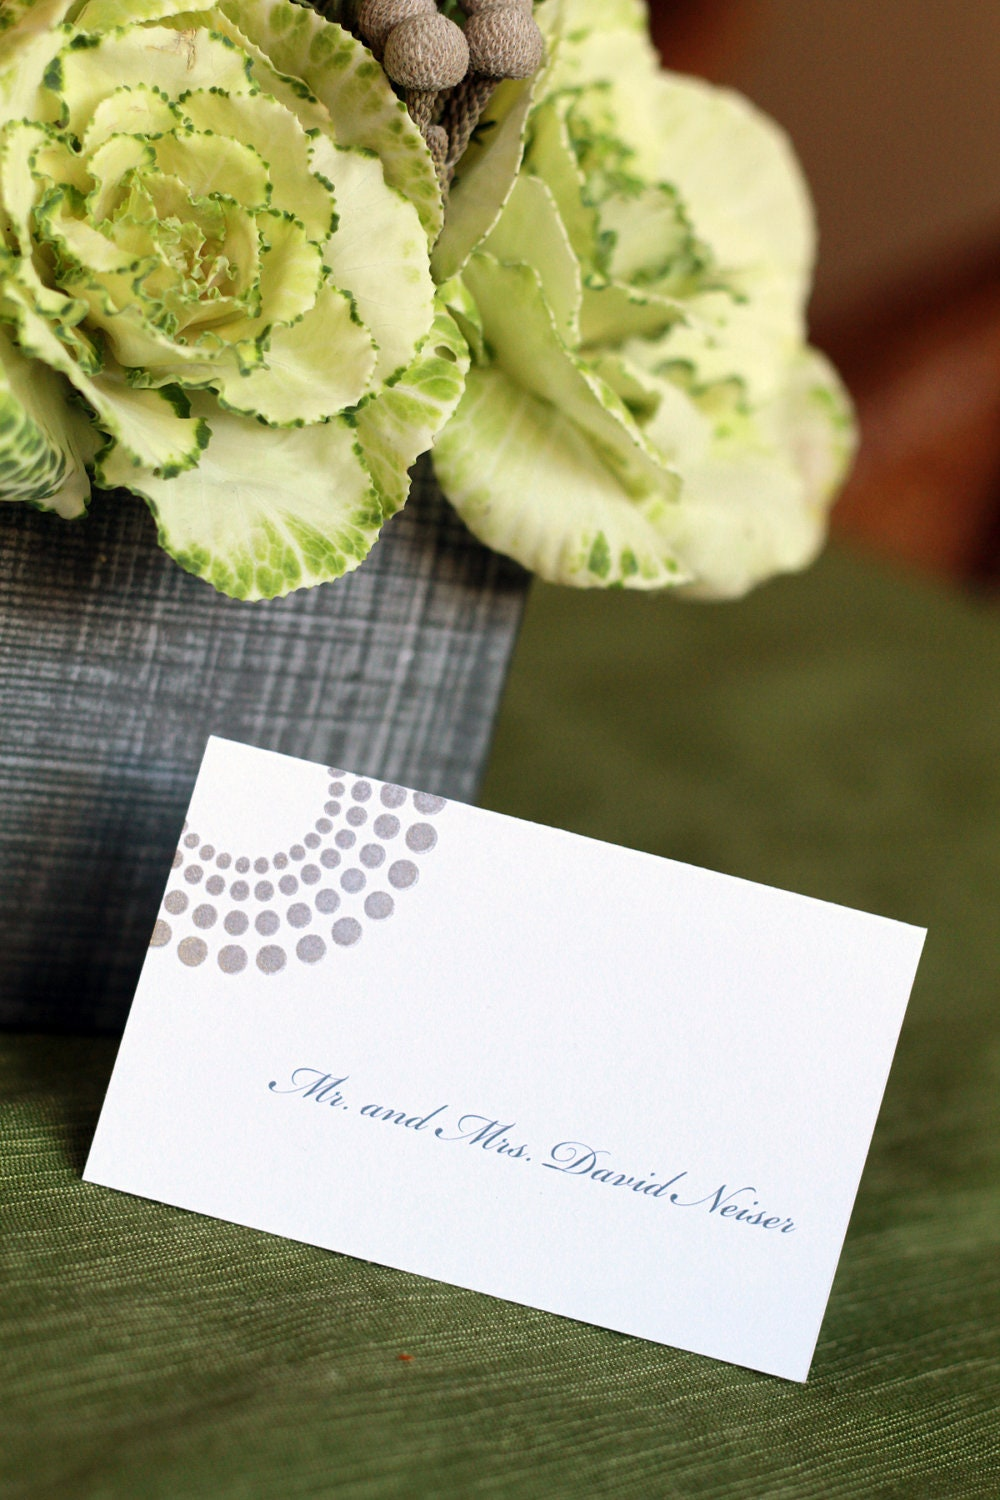 Shimmer Silver Modern Deco Place Cards Escort Cards Hand Stamped Cards Wed